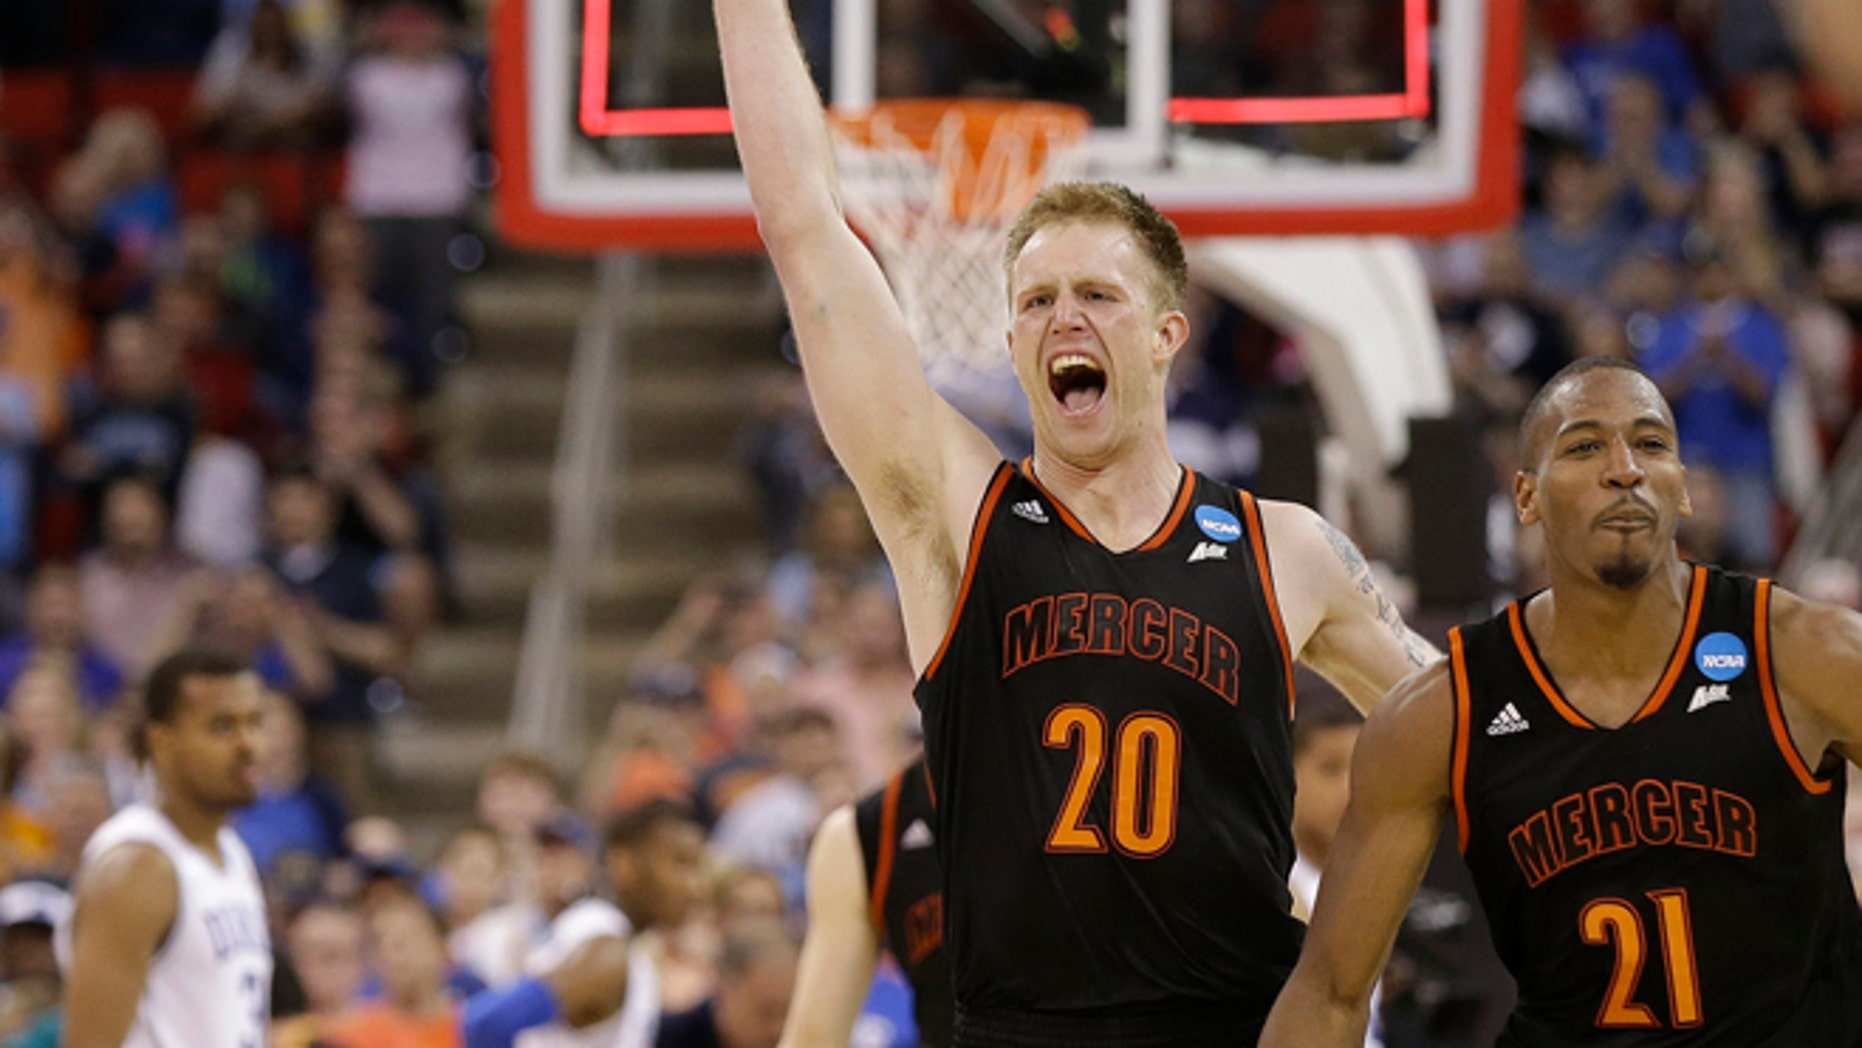 Mar. 21, 2014: Mercer forward Jakob Gollon (20) and guard Langston Hall (21) celebrate after defeating Duke 78-71 in an NCAA college basketball second-round game against Duke, in Raleigh, N.C.